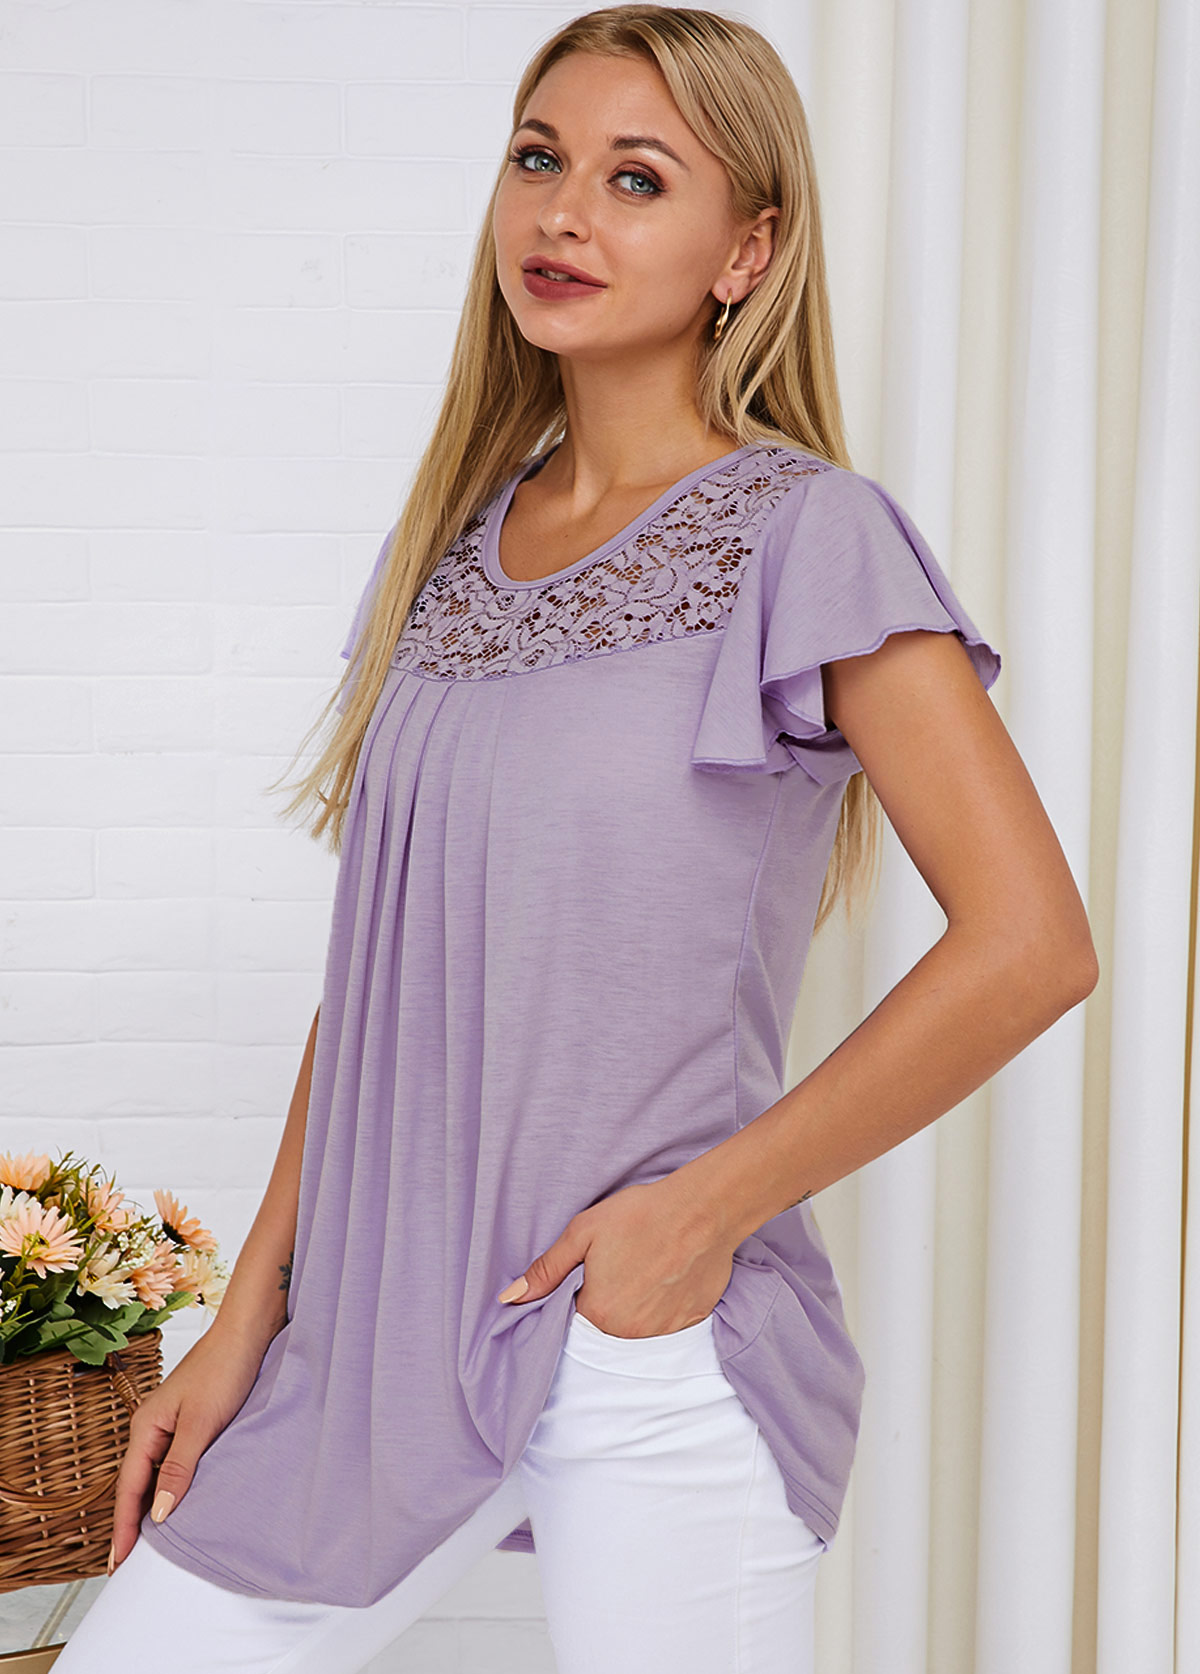 Short Sleeve Lace Panel Light Purple T Shirt